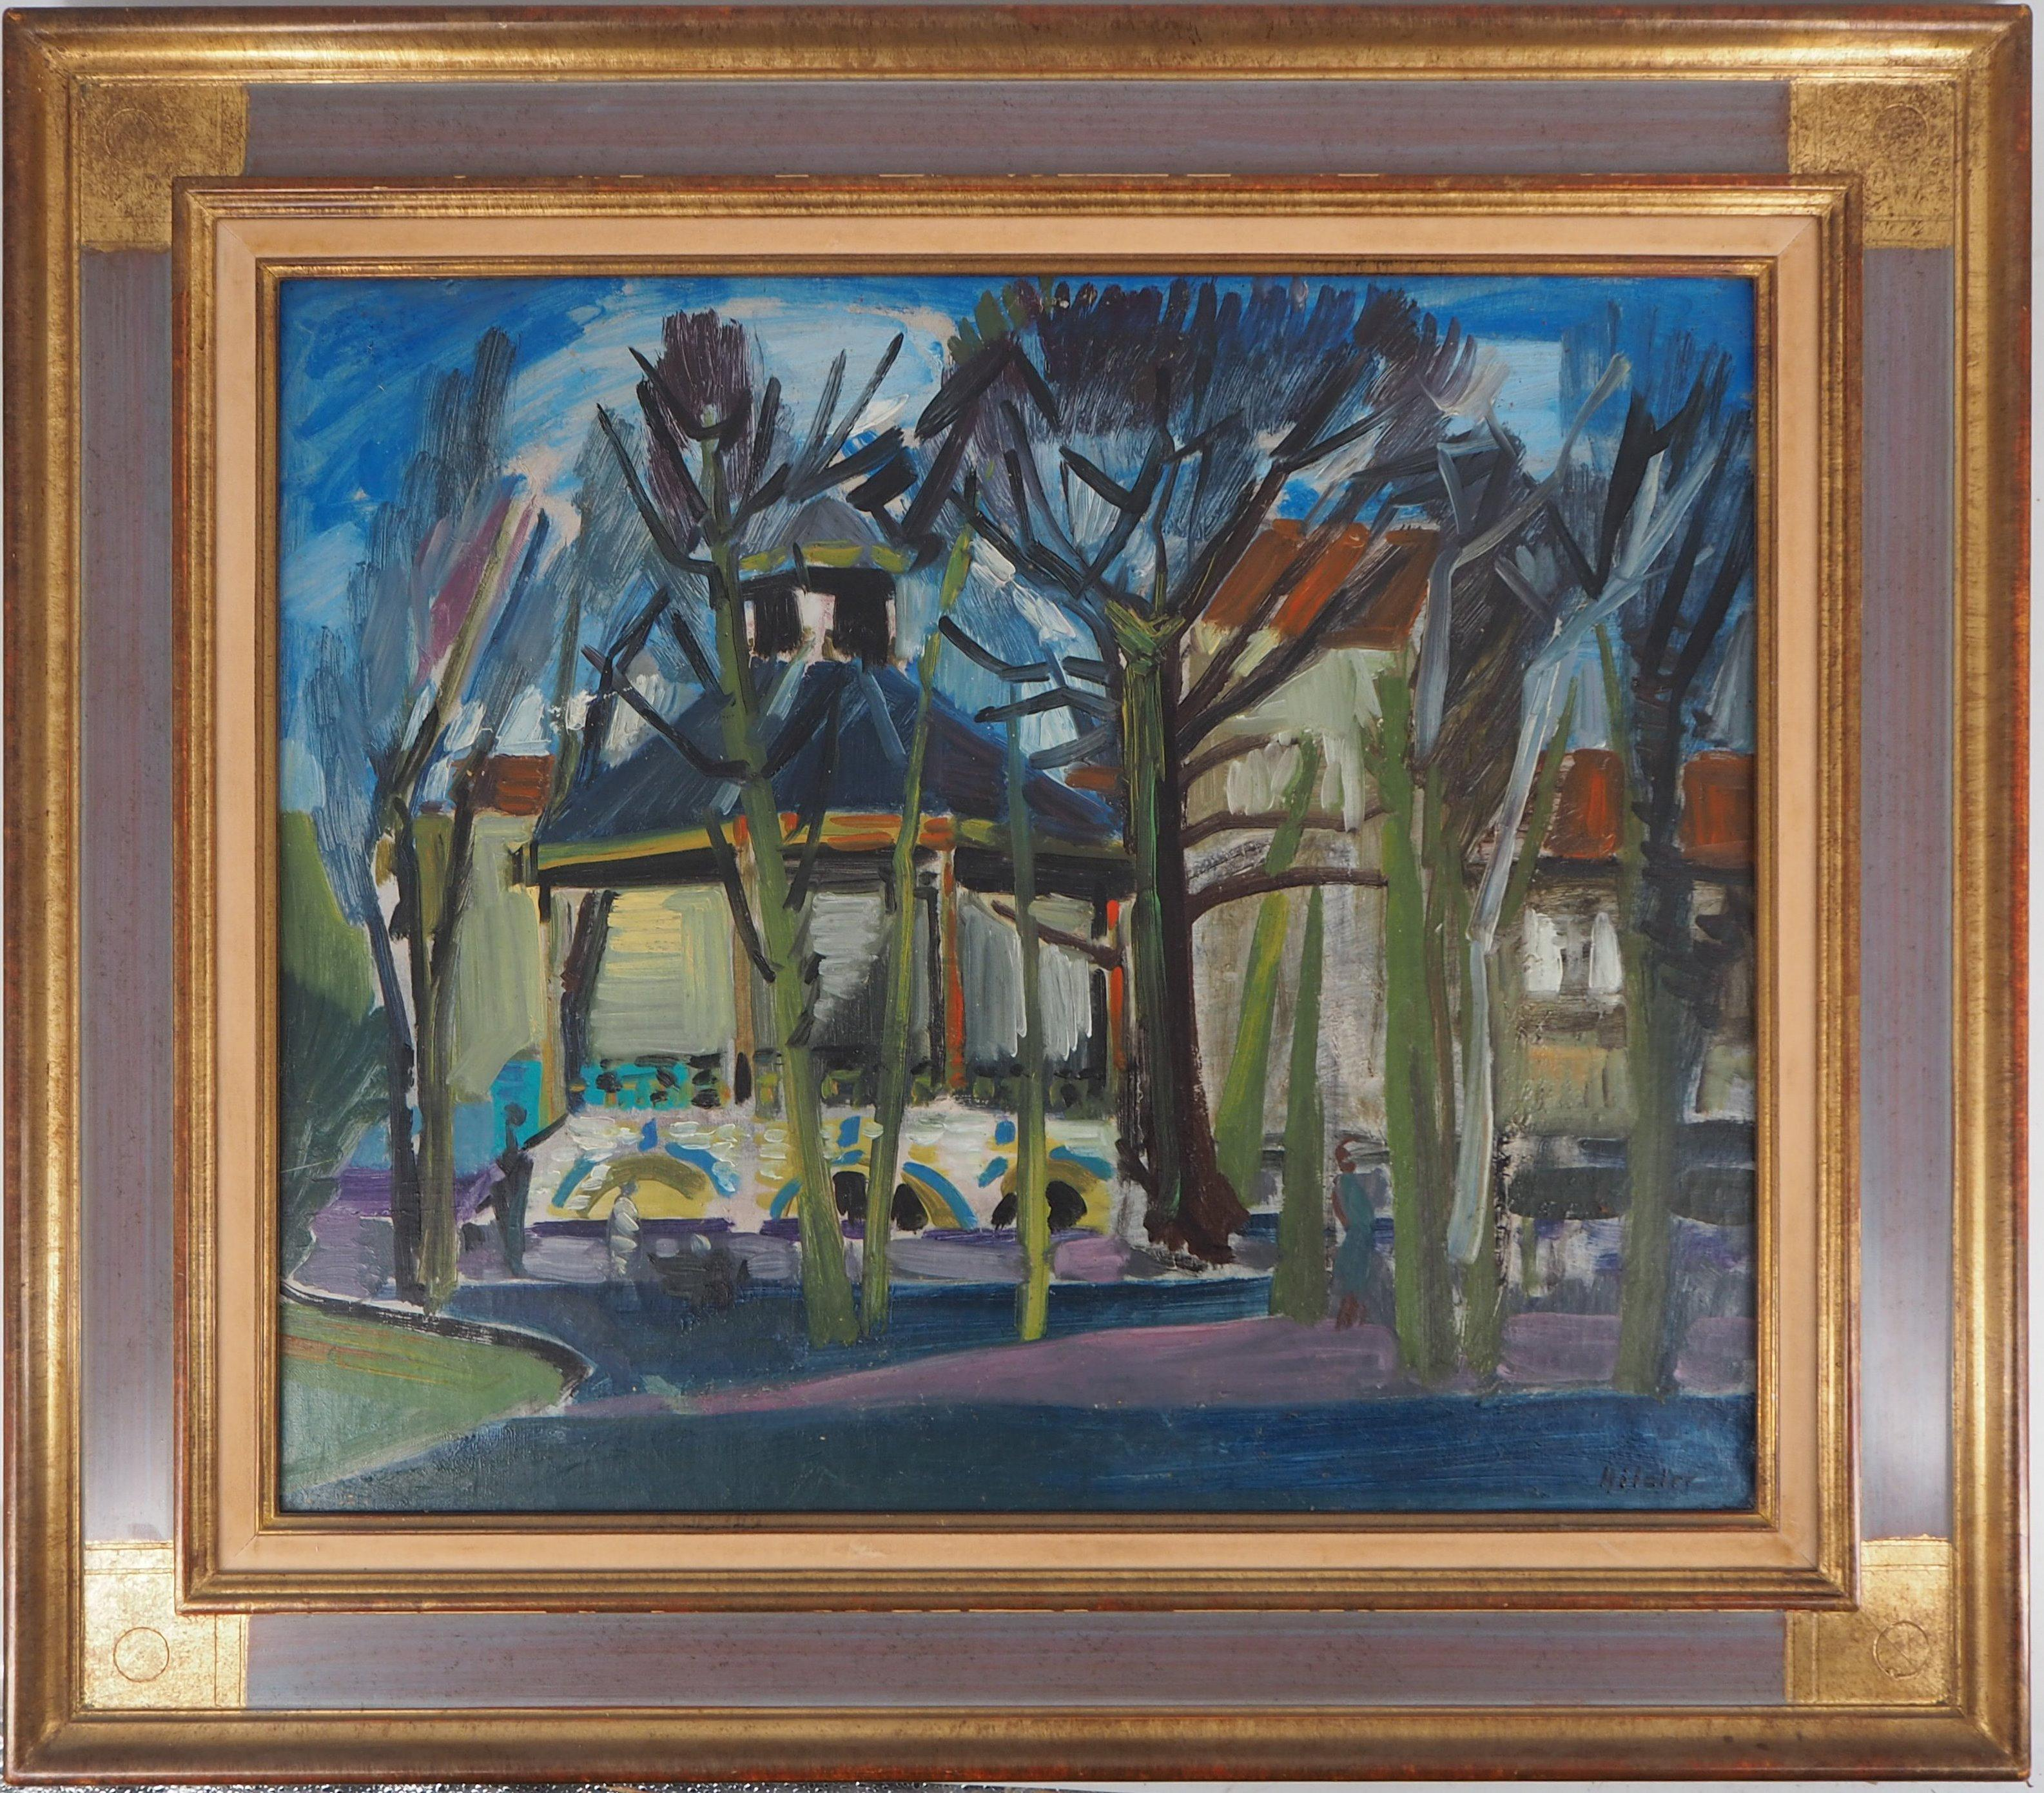 Bandstand in the Garden of a Castle - Original oil on canvas, Signed